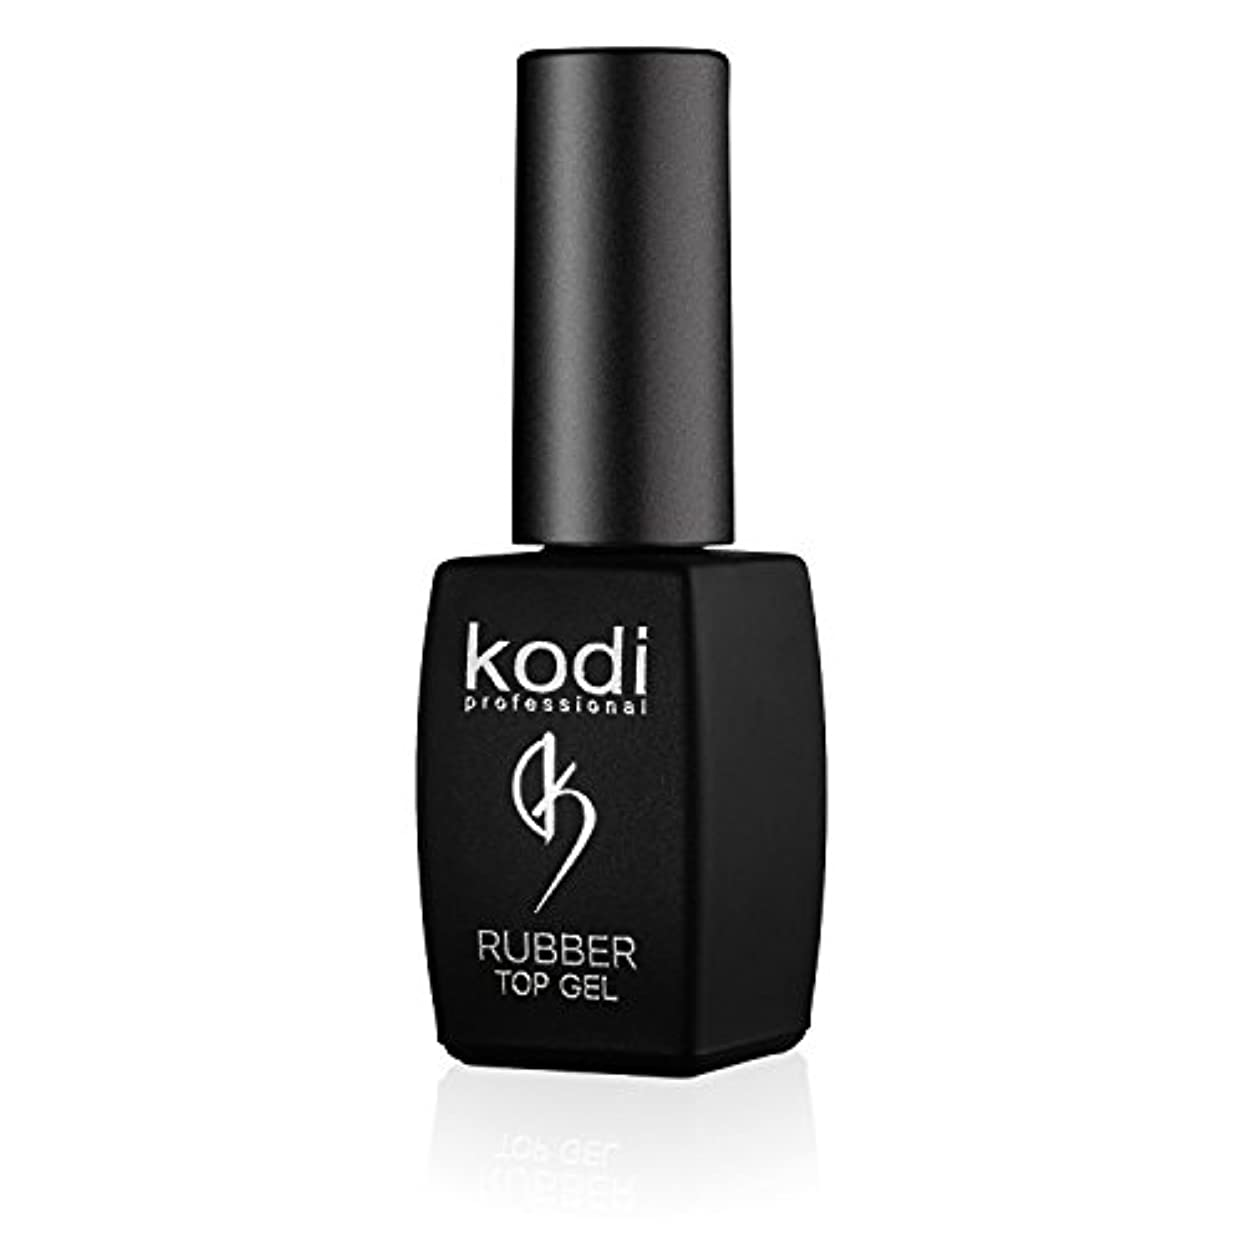 スーパー筋色Professional Rubber Top Gel By Kodi | 8ml 0.27 oz | Soak Off, Polish Fingernails Coat Kit | For Long Lasting Nails Layer | Easy To Use, Non-Toxic & Scentless | Cure Under LED Or UV Lamp